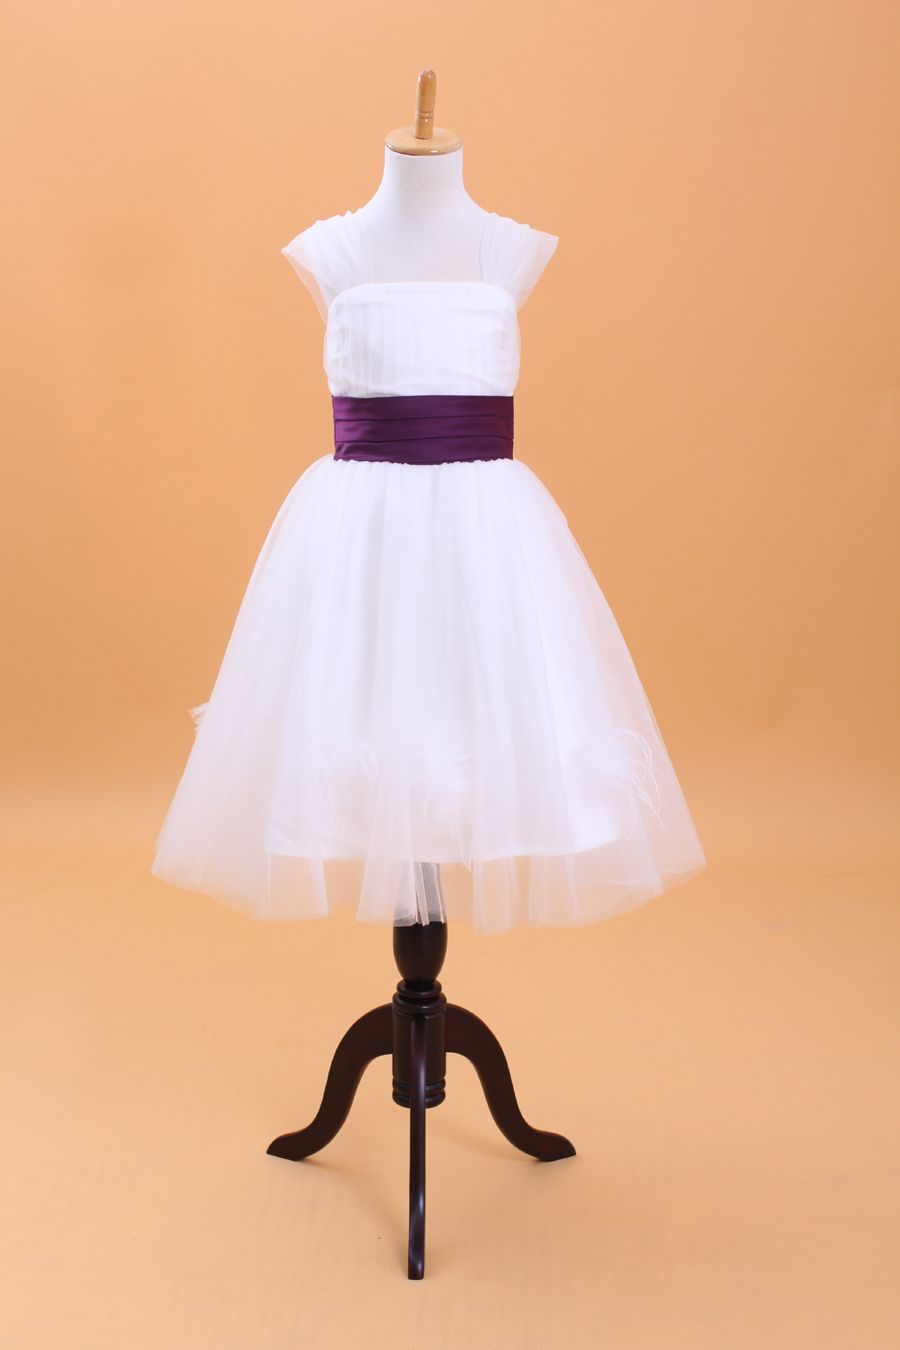 c3afc4f54a8 High neck A-line sleeveless tulle dress for flower girl